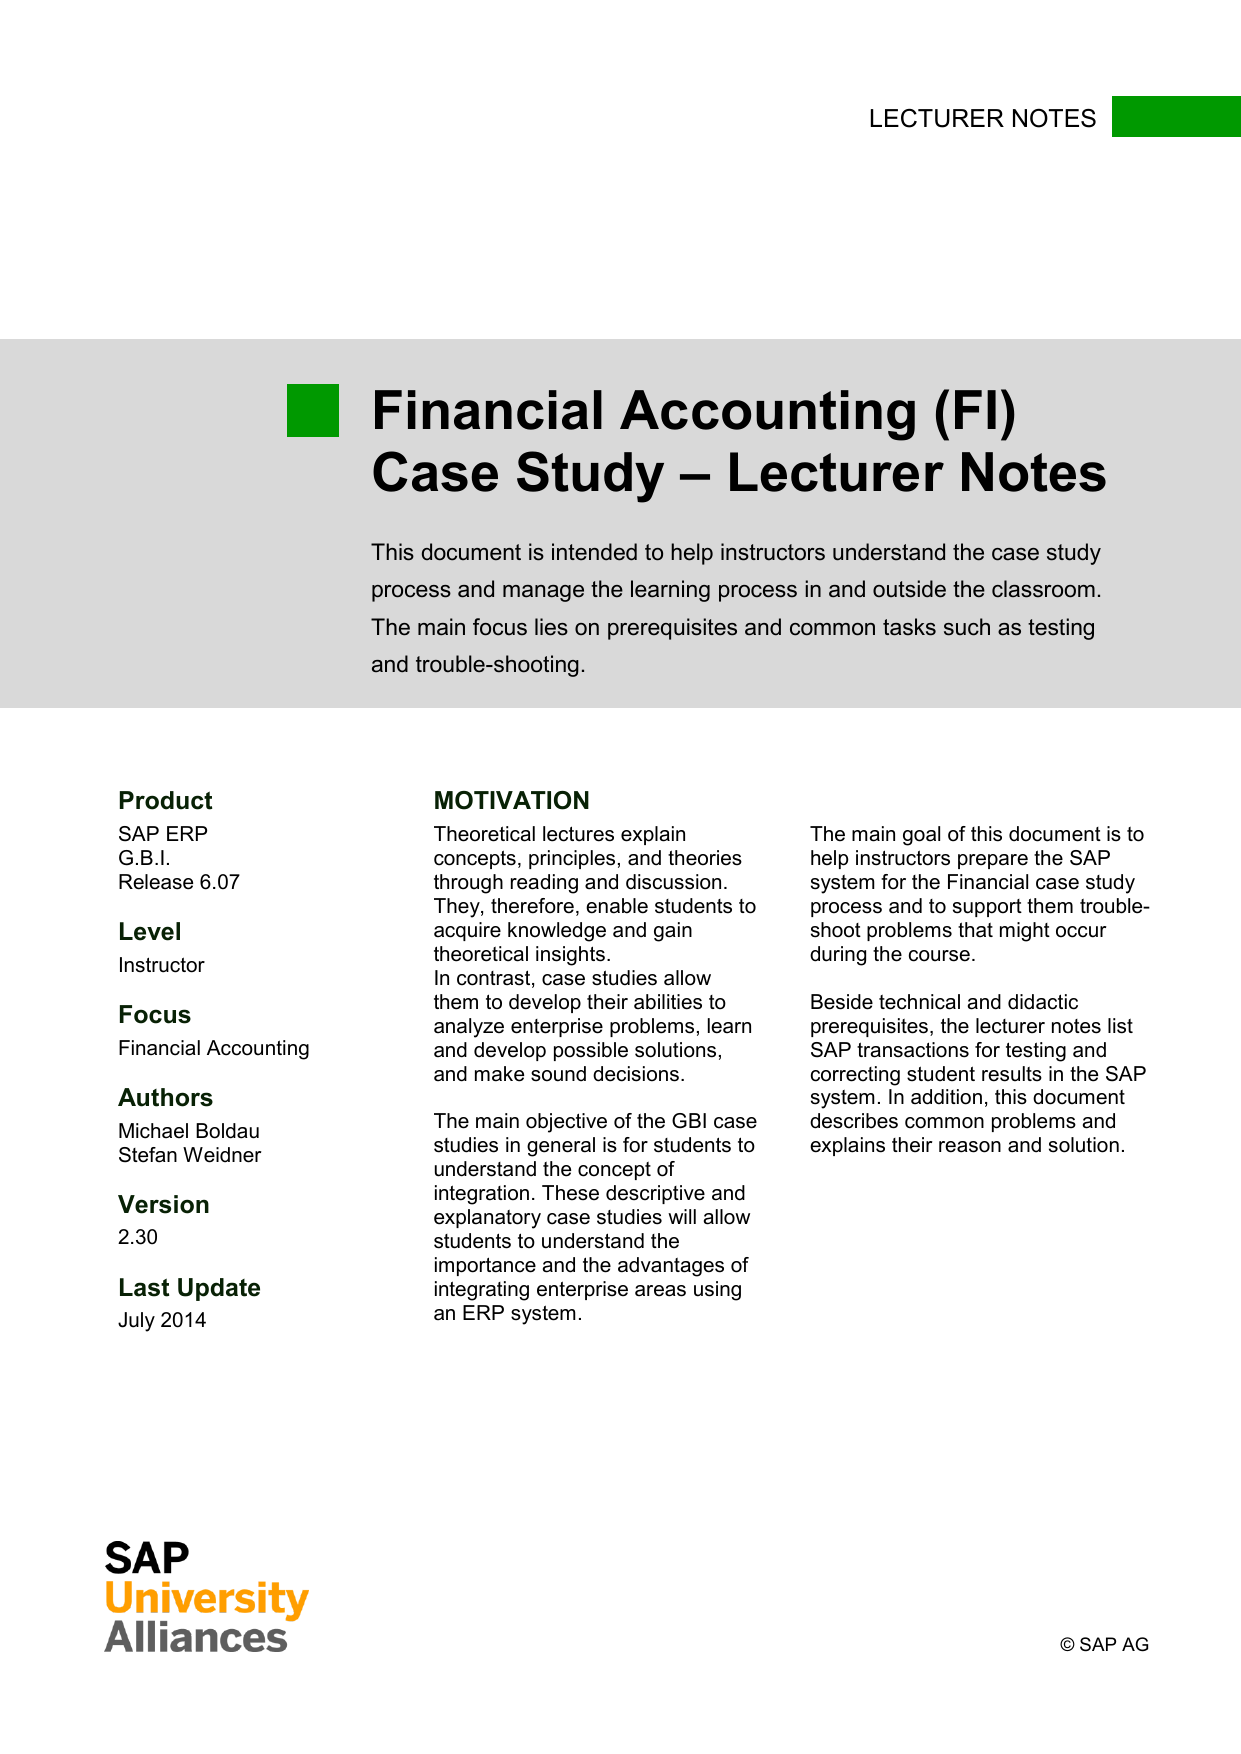 Financial Accounting (FI) Case Study – Lecturer